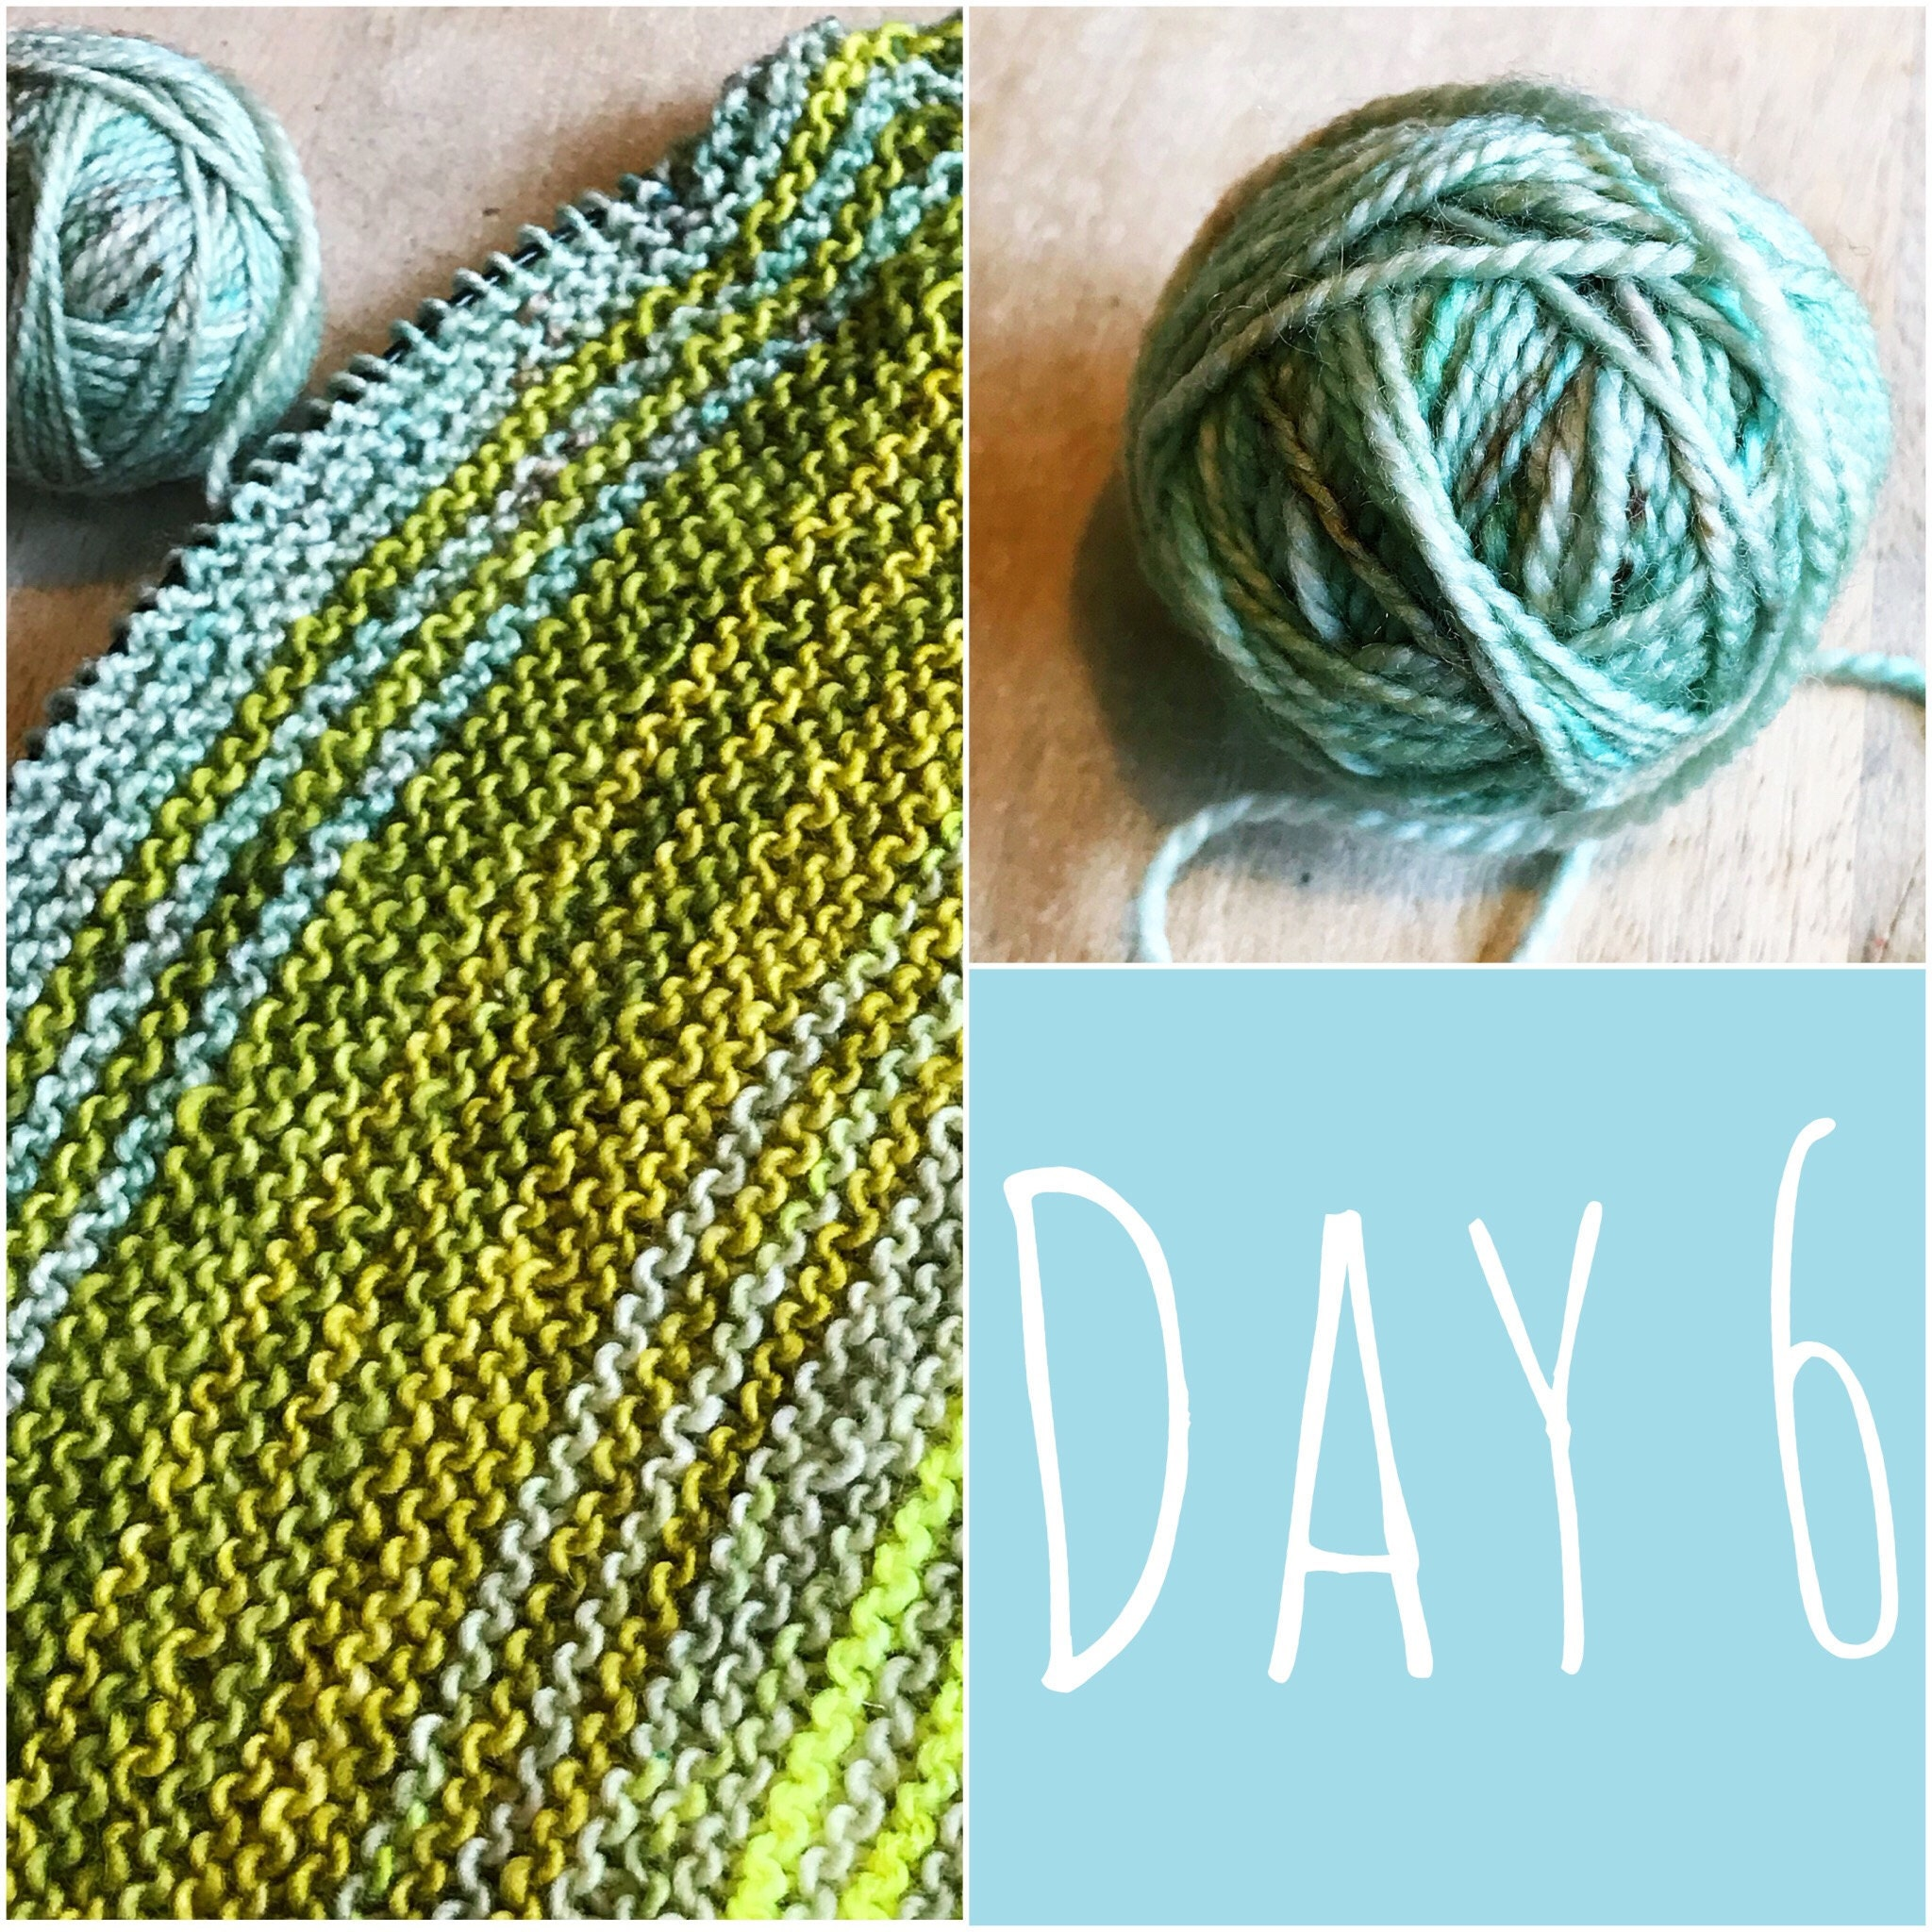 day 6 of advent wrap